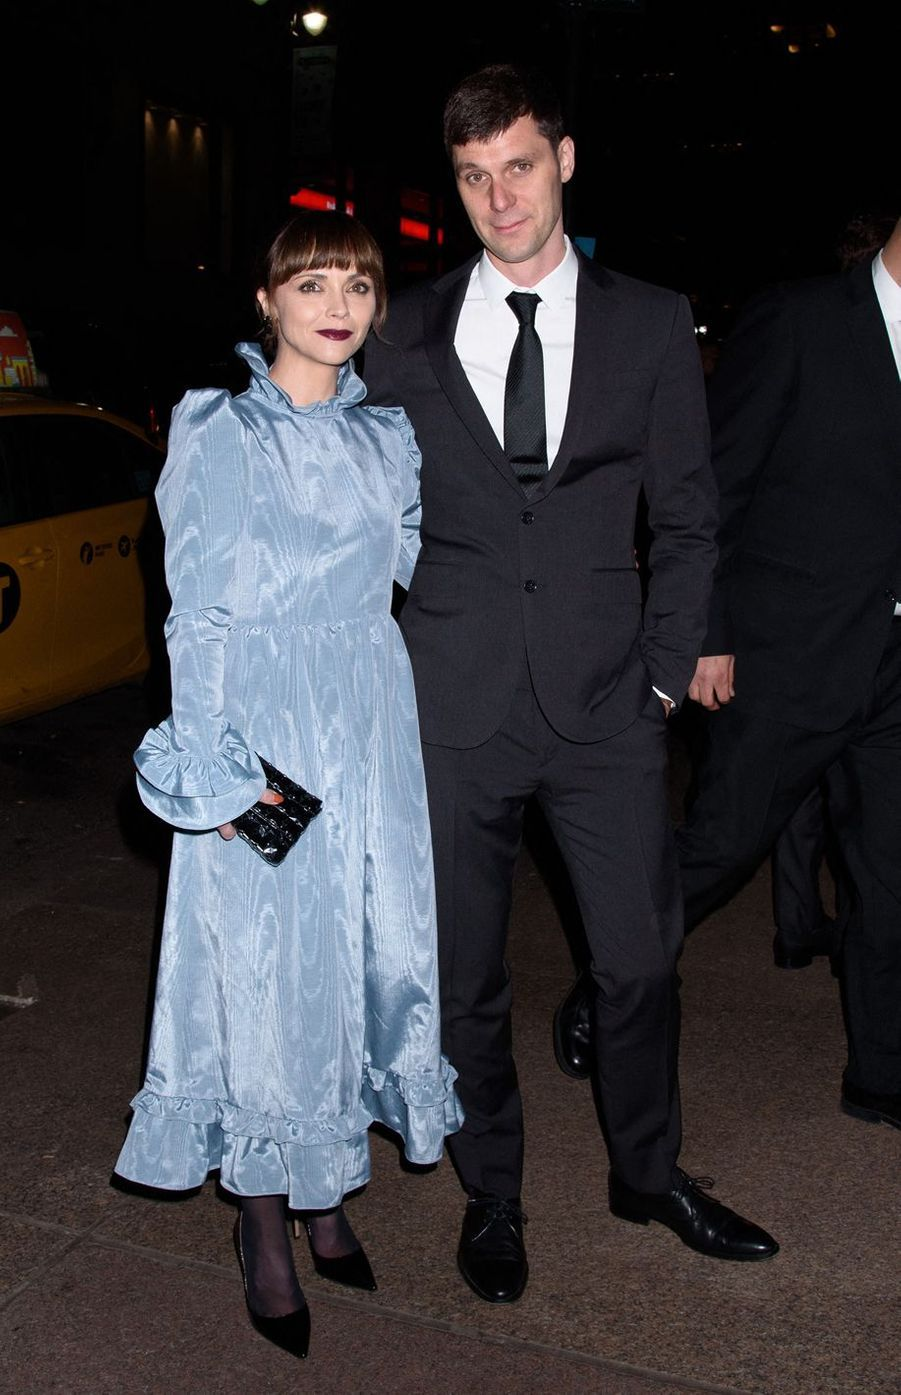 Christina Ricci et son mari James Heerdegen au mariage de Marc Jacobs et Char Defrancesco à New York le 6 avril 2019